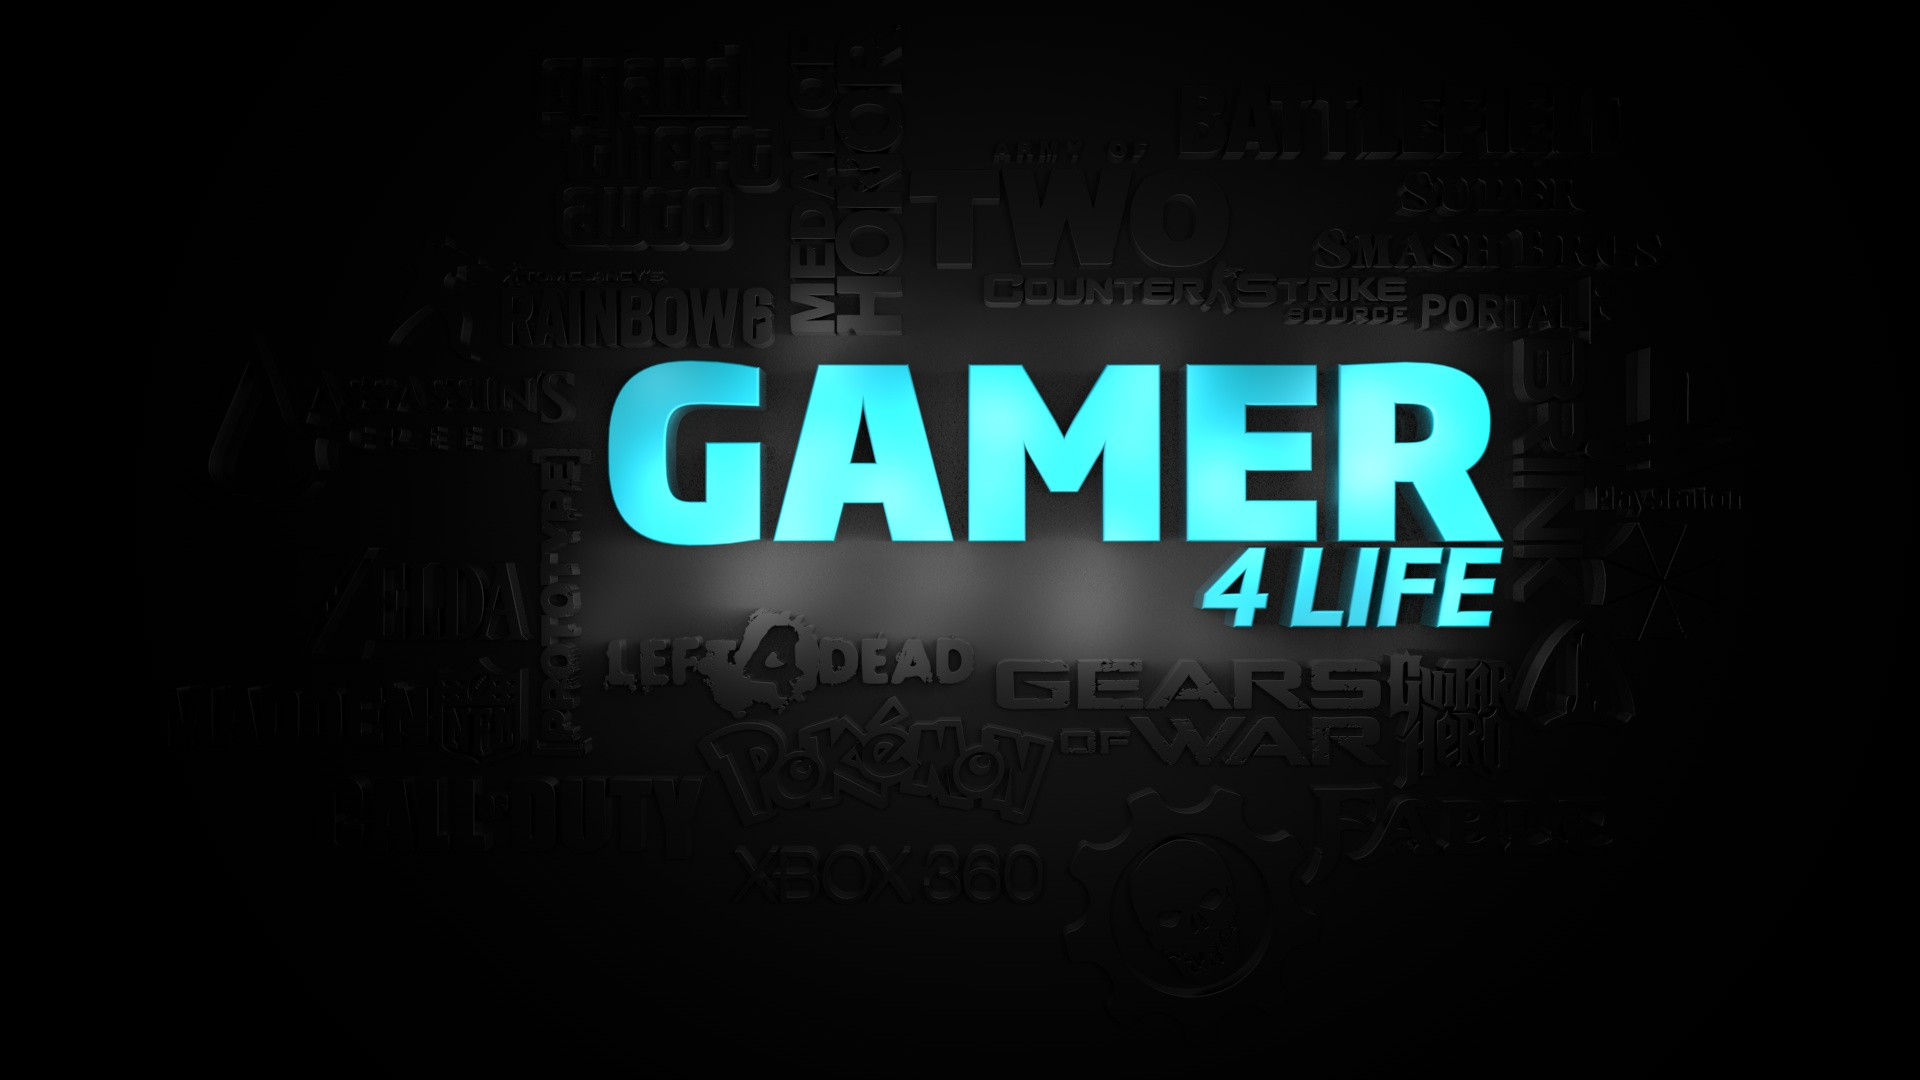 Gamer for Life Wallpaper by ChucklesMedia